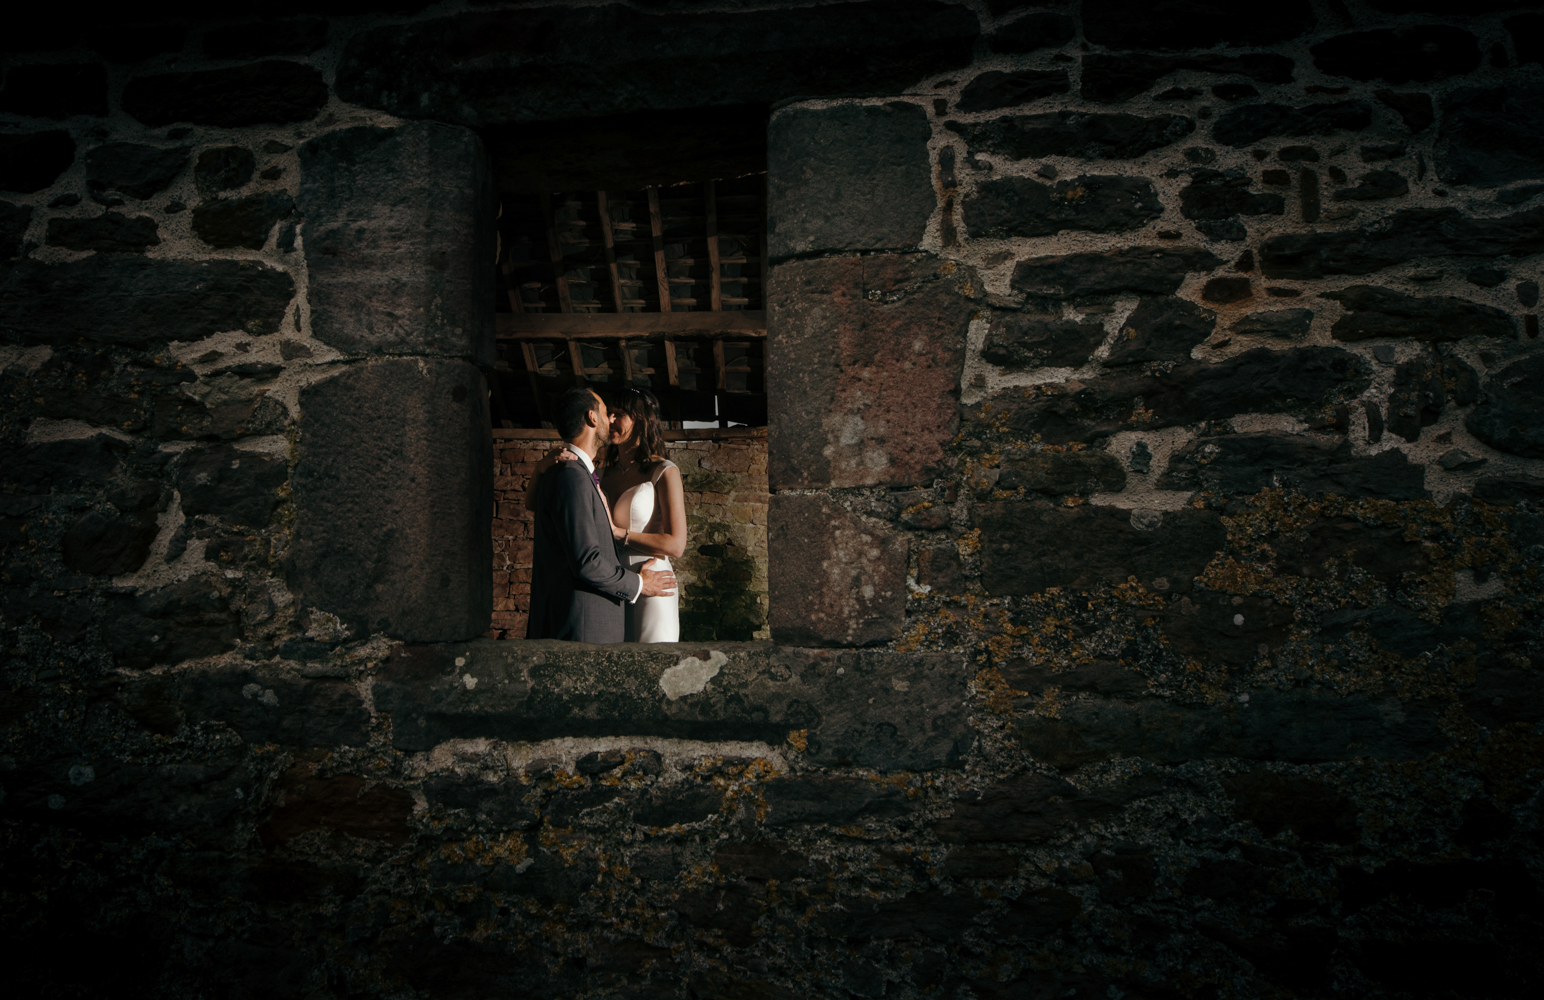 The bride and groom standing in a window having a cuddle